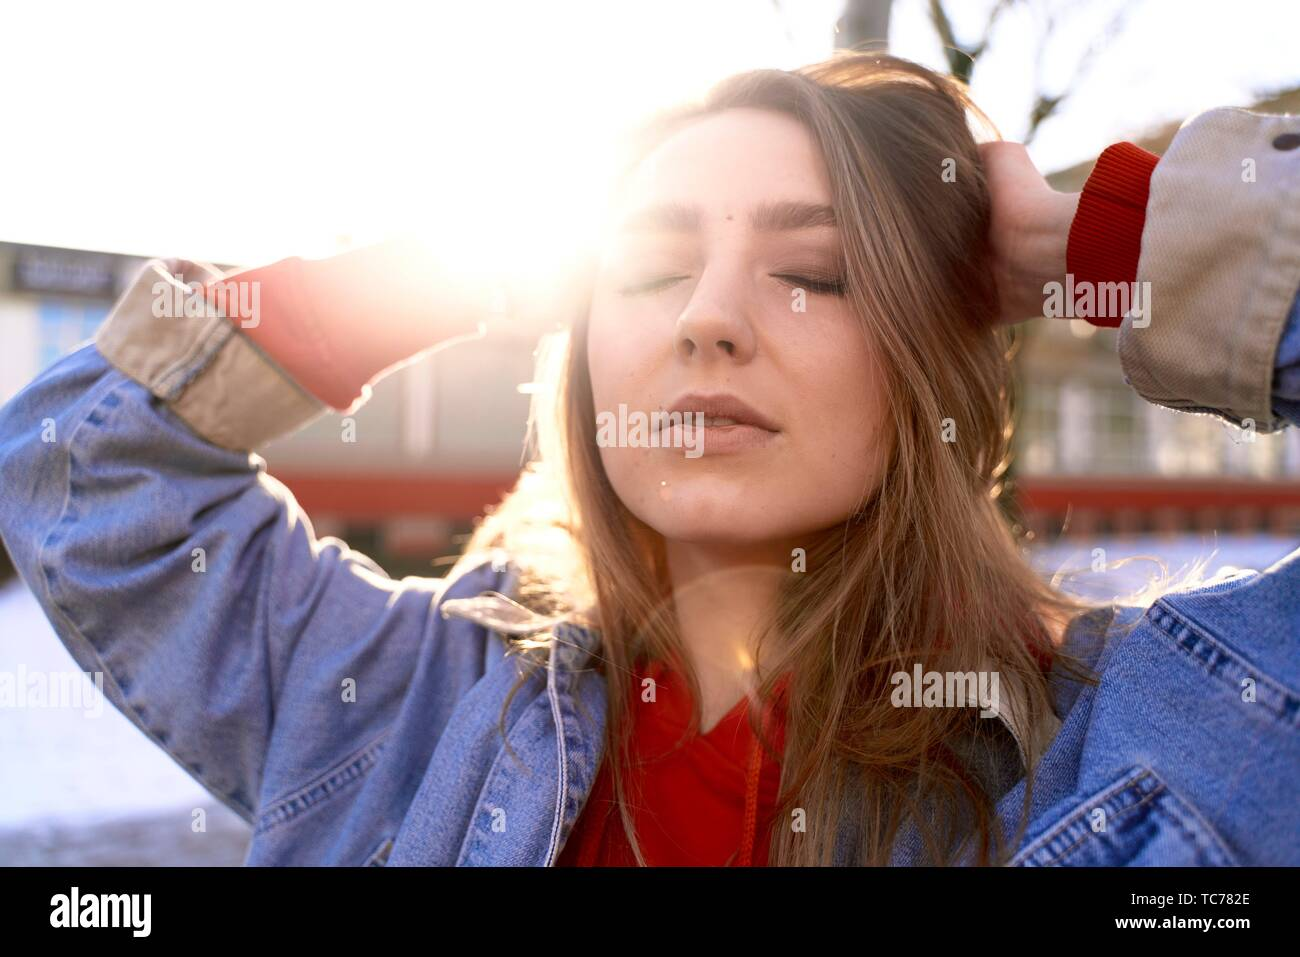 young emotive woman with closed eyes outdoors sunlight, in Cottbus, Brandenburg, Germany - Stock Image